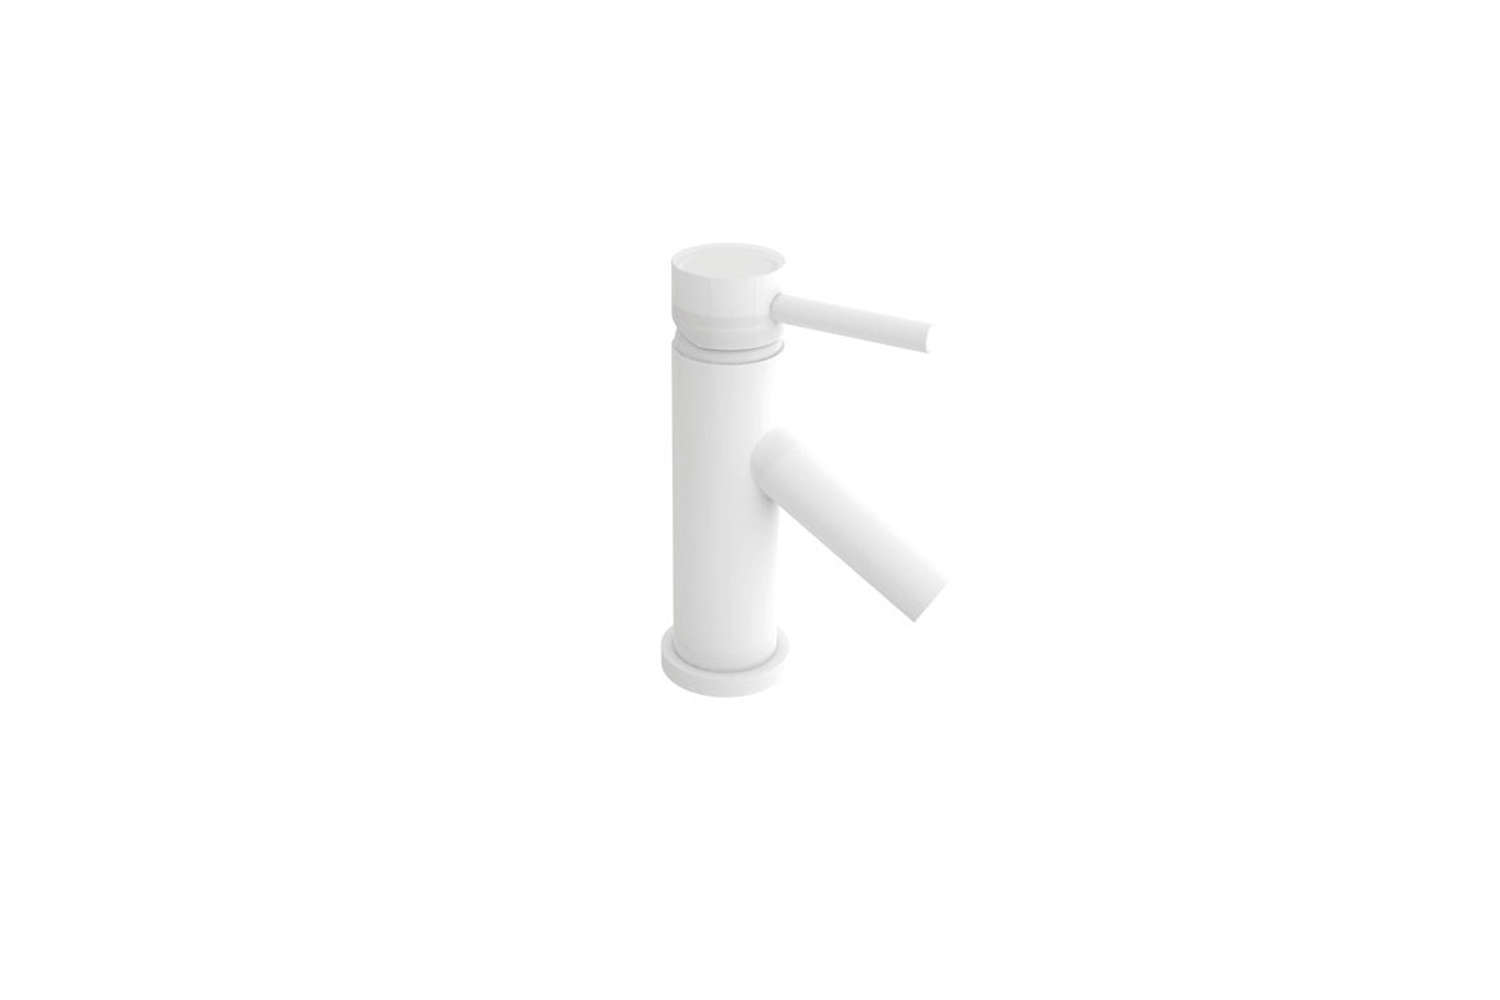 The Newport Brass East Linear Single Hole Bathroom Sink Faucet in white is $749.09 at Ferguson.